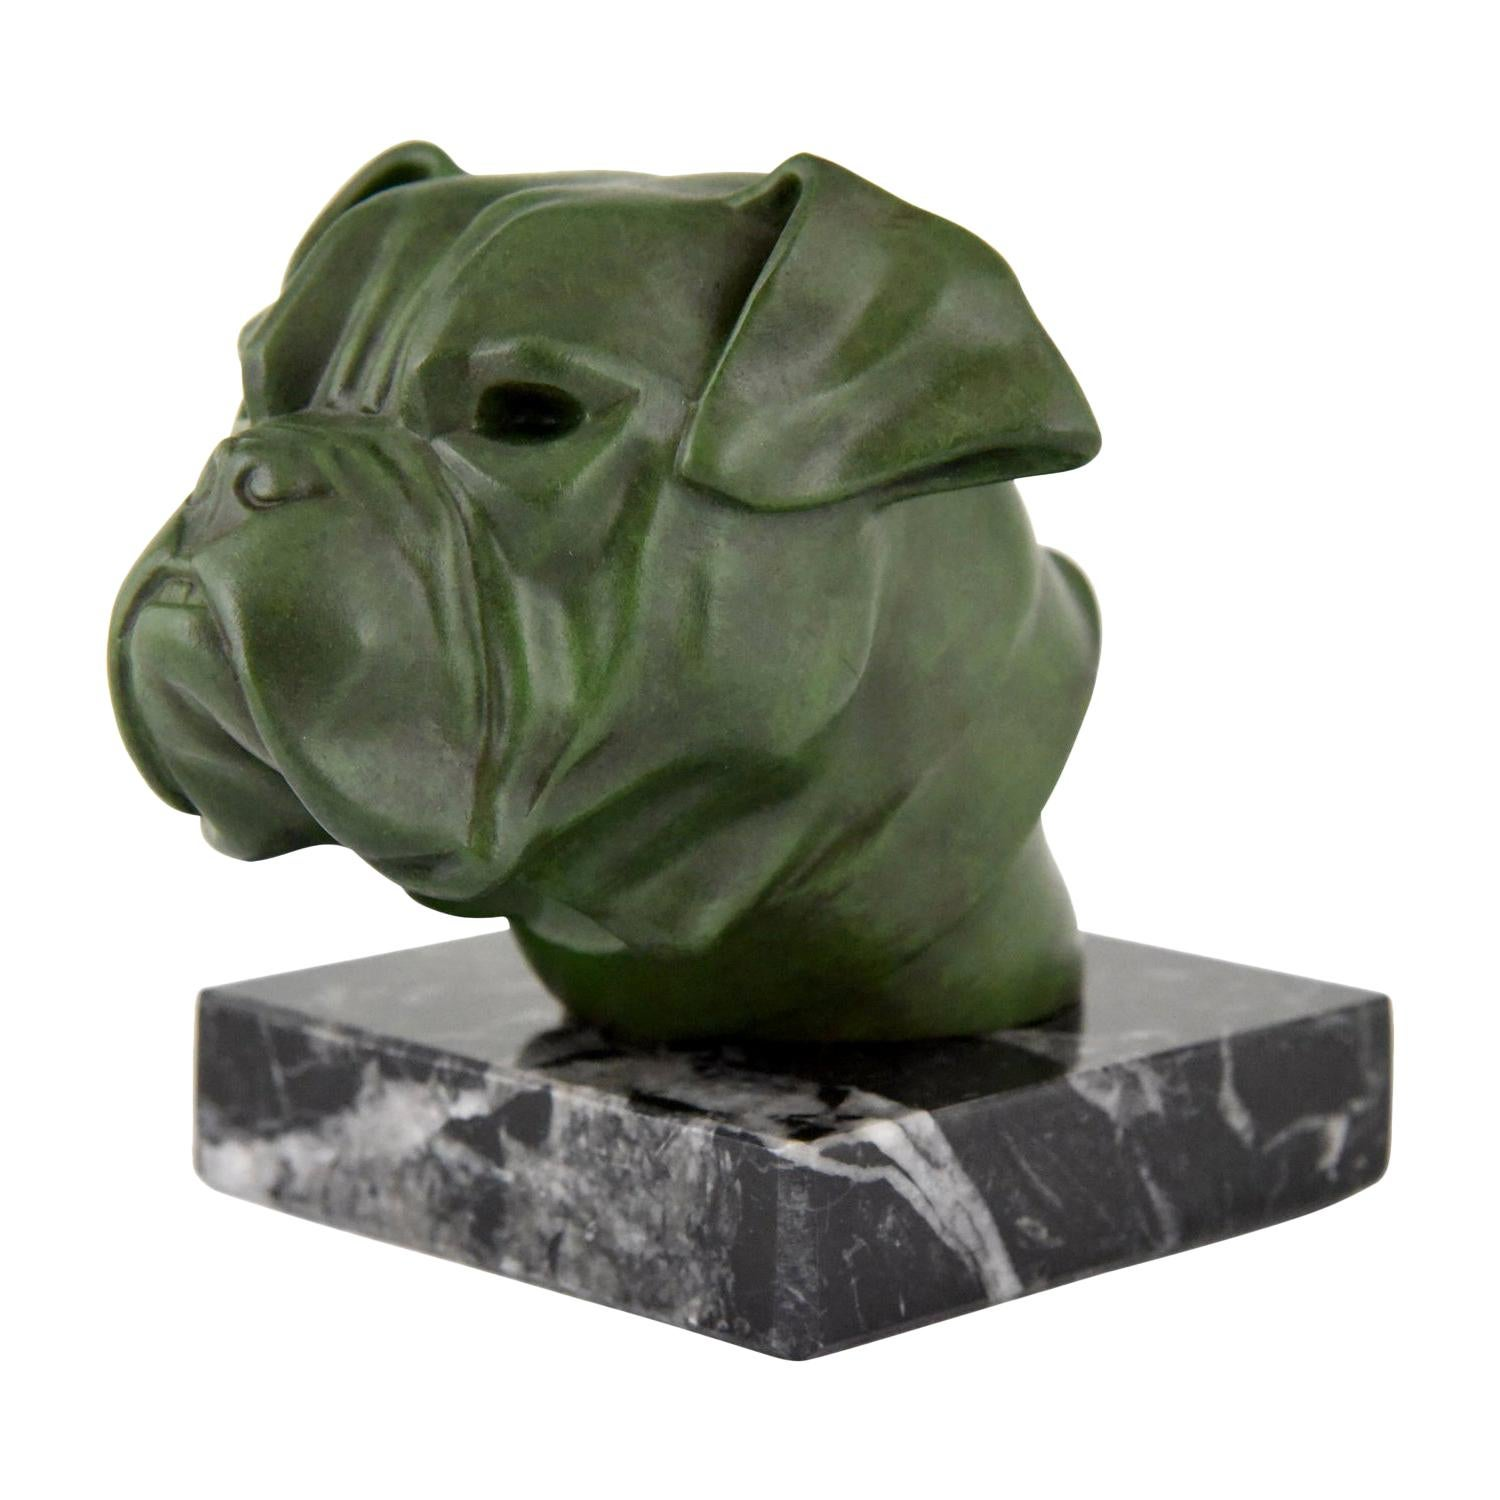 Art Deco Sculpture Bulldog Paperweight Car Mascot Max Le Verrier, 1930